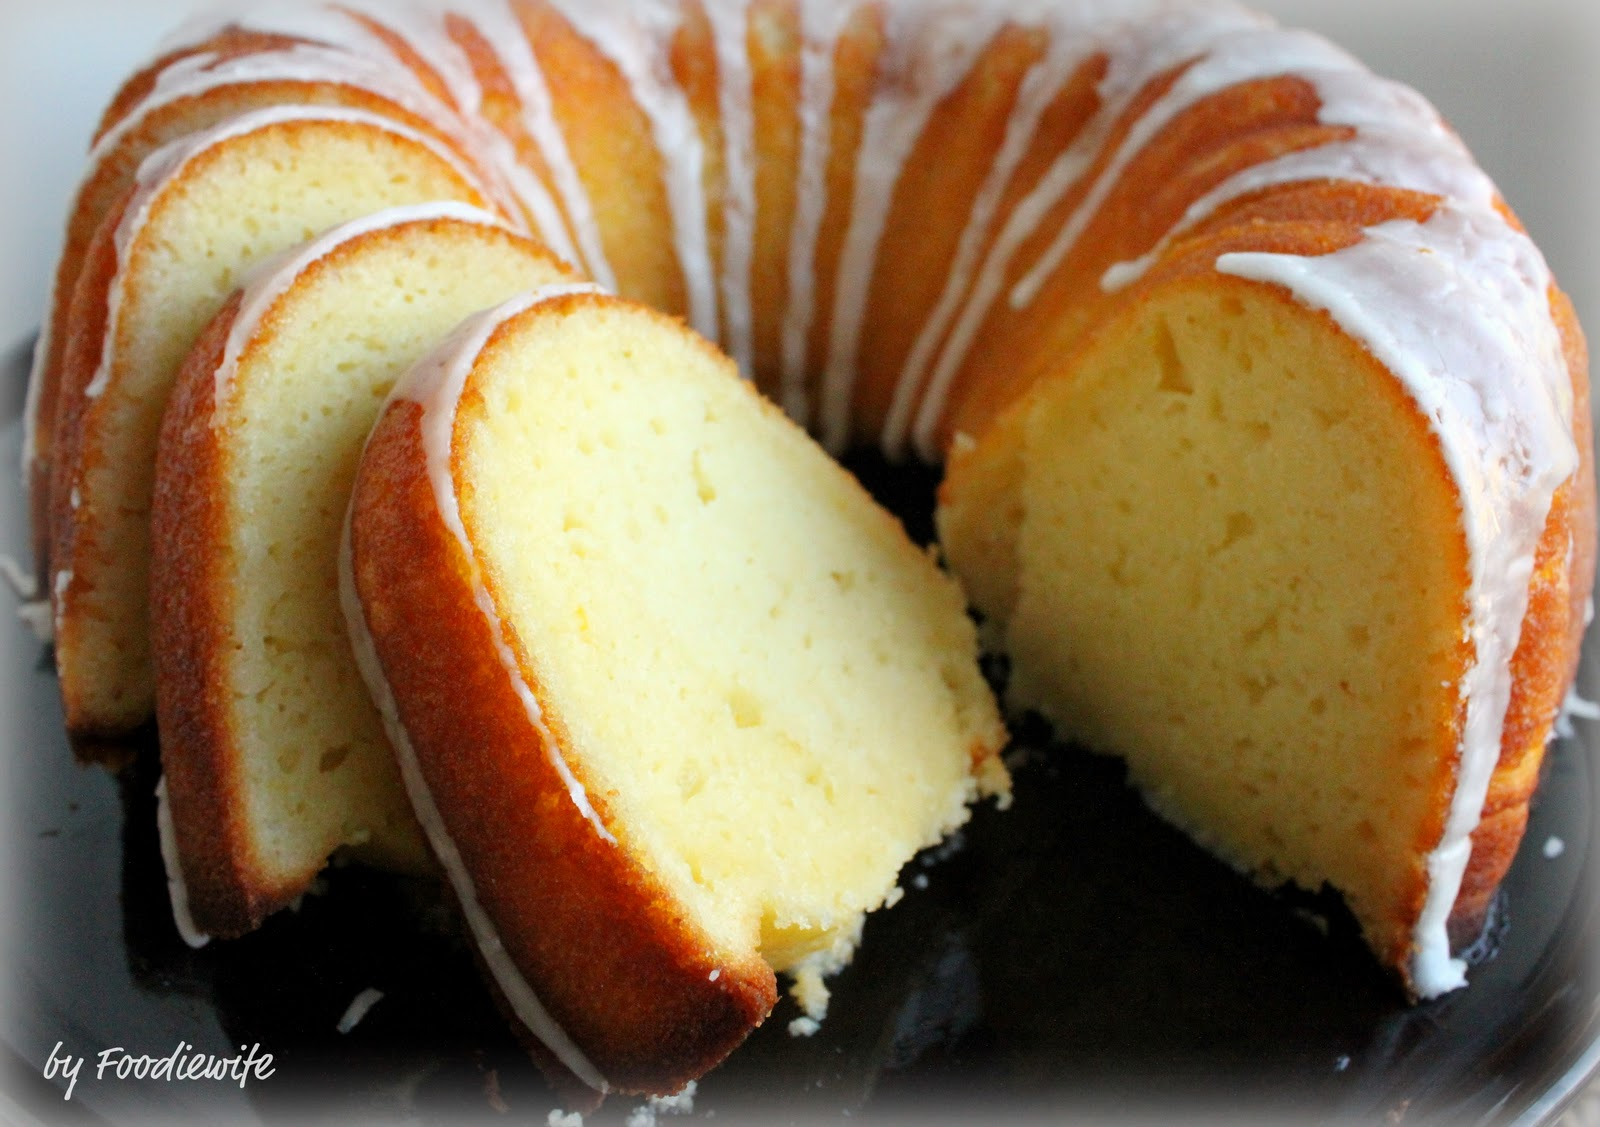 Lemon bundt cake recipes uk